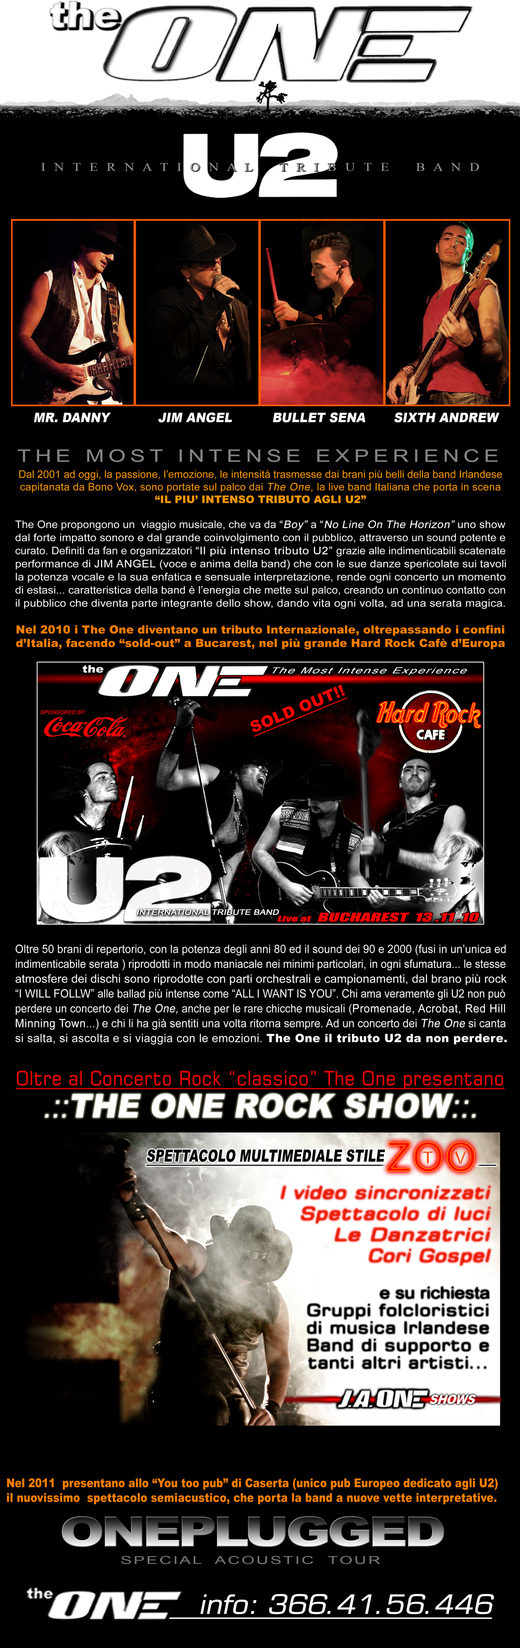 The One U2 Tribute Band Roma Small.jpg?1310636117?0